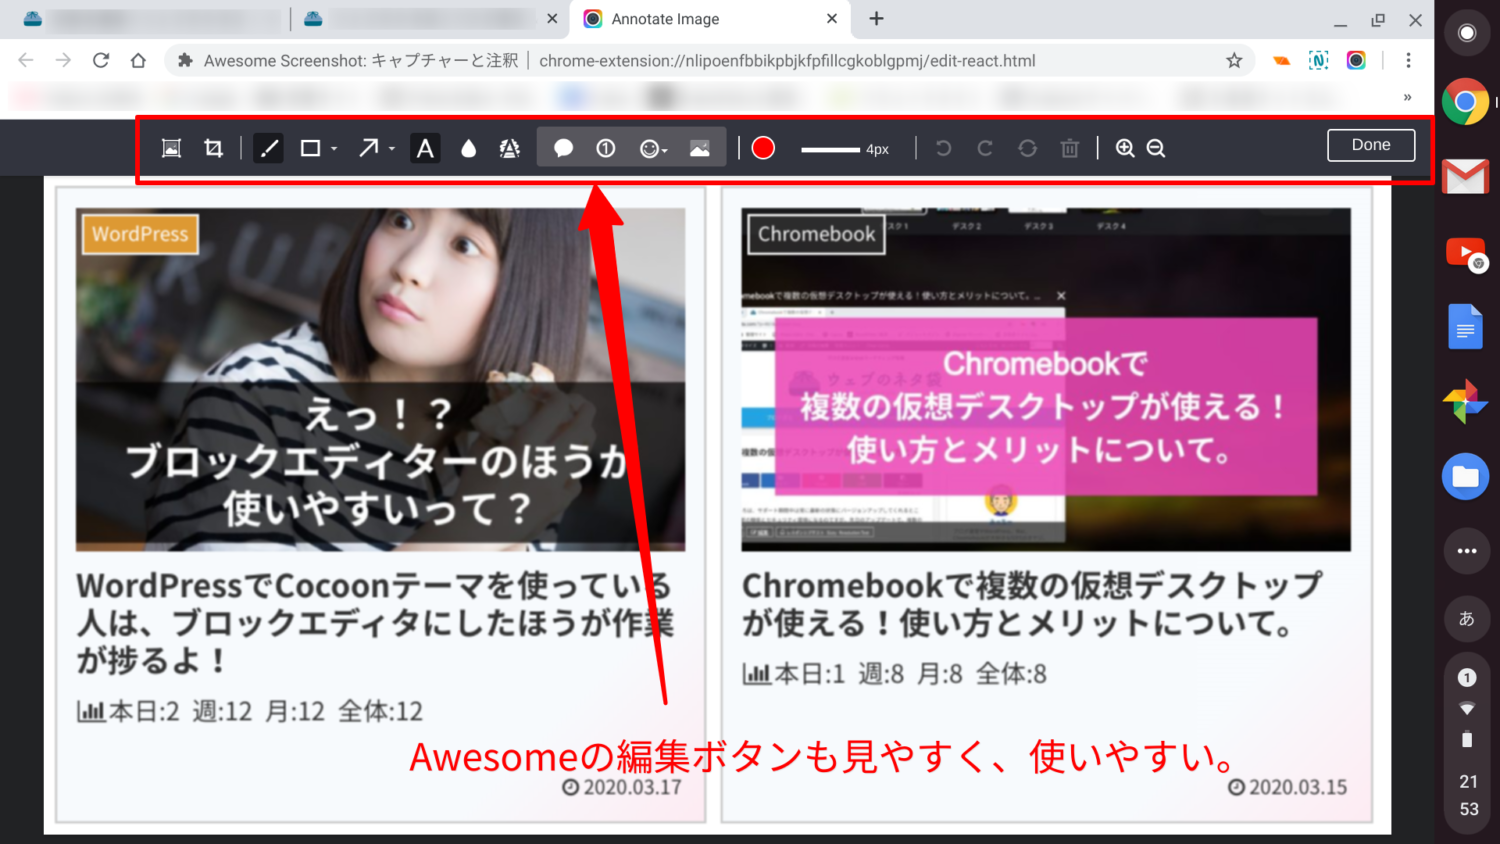 Awesomeメニュー